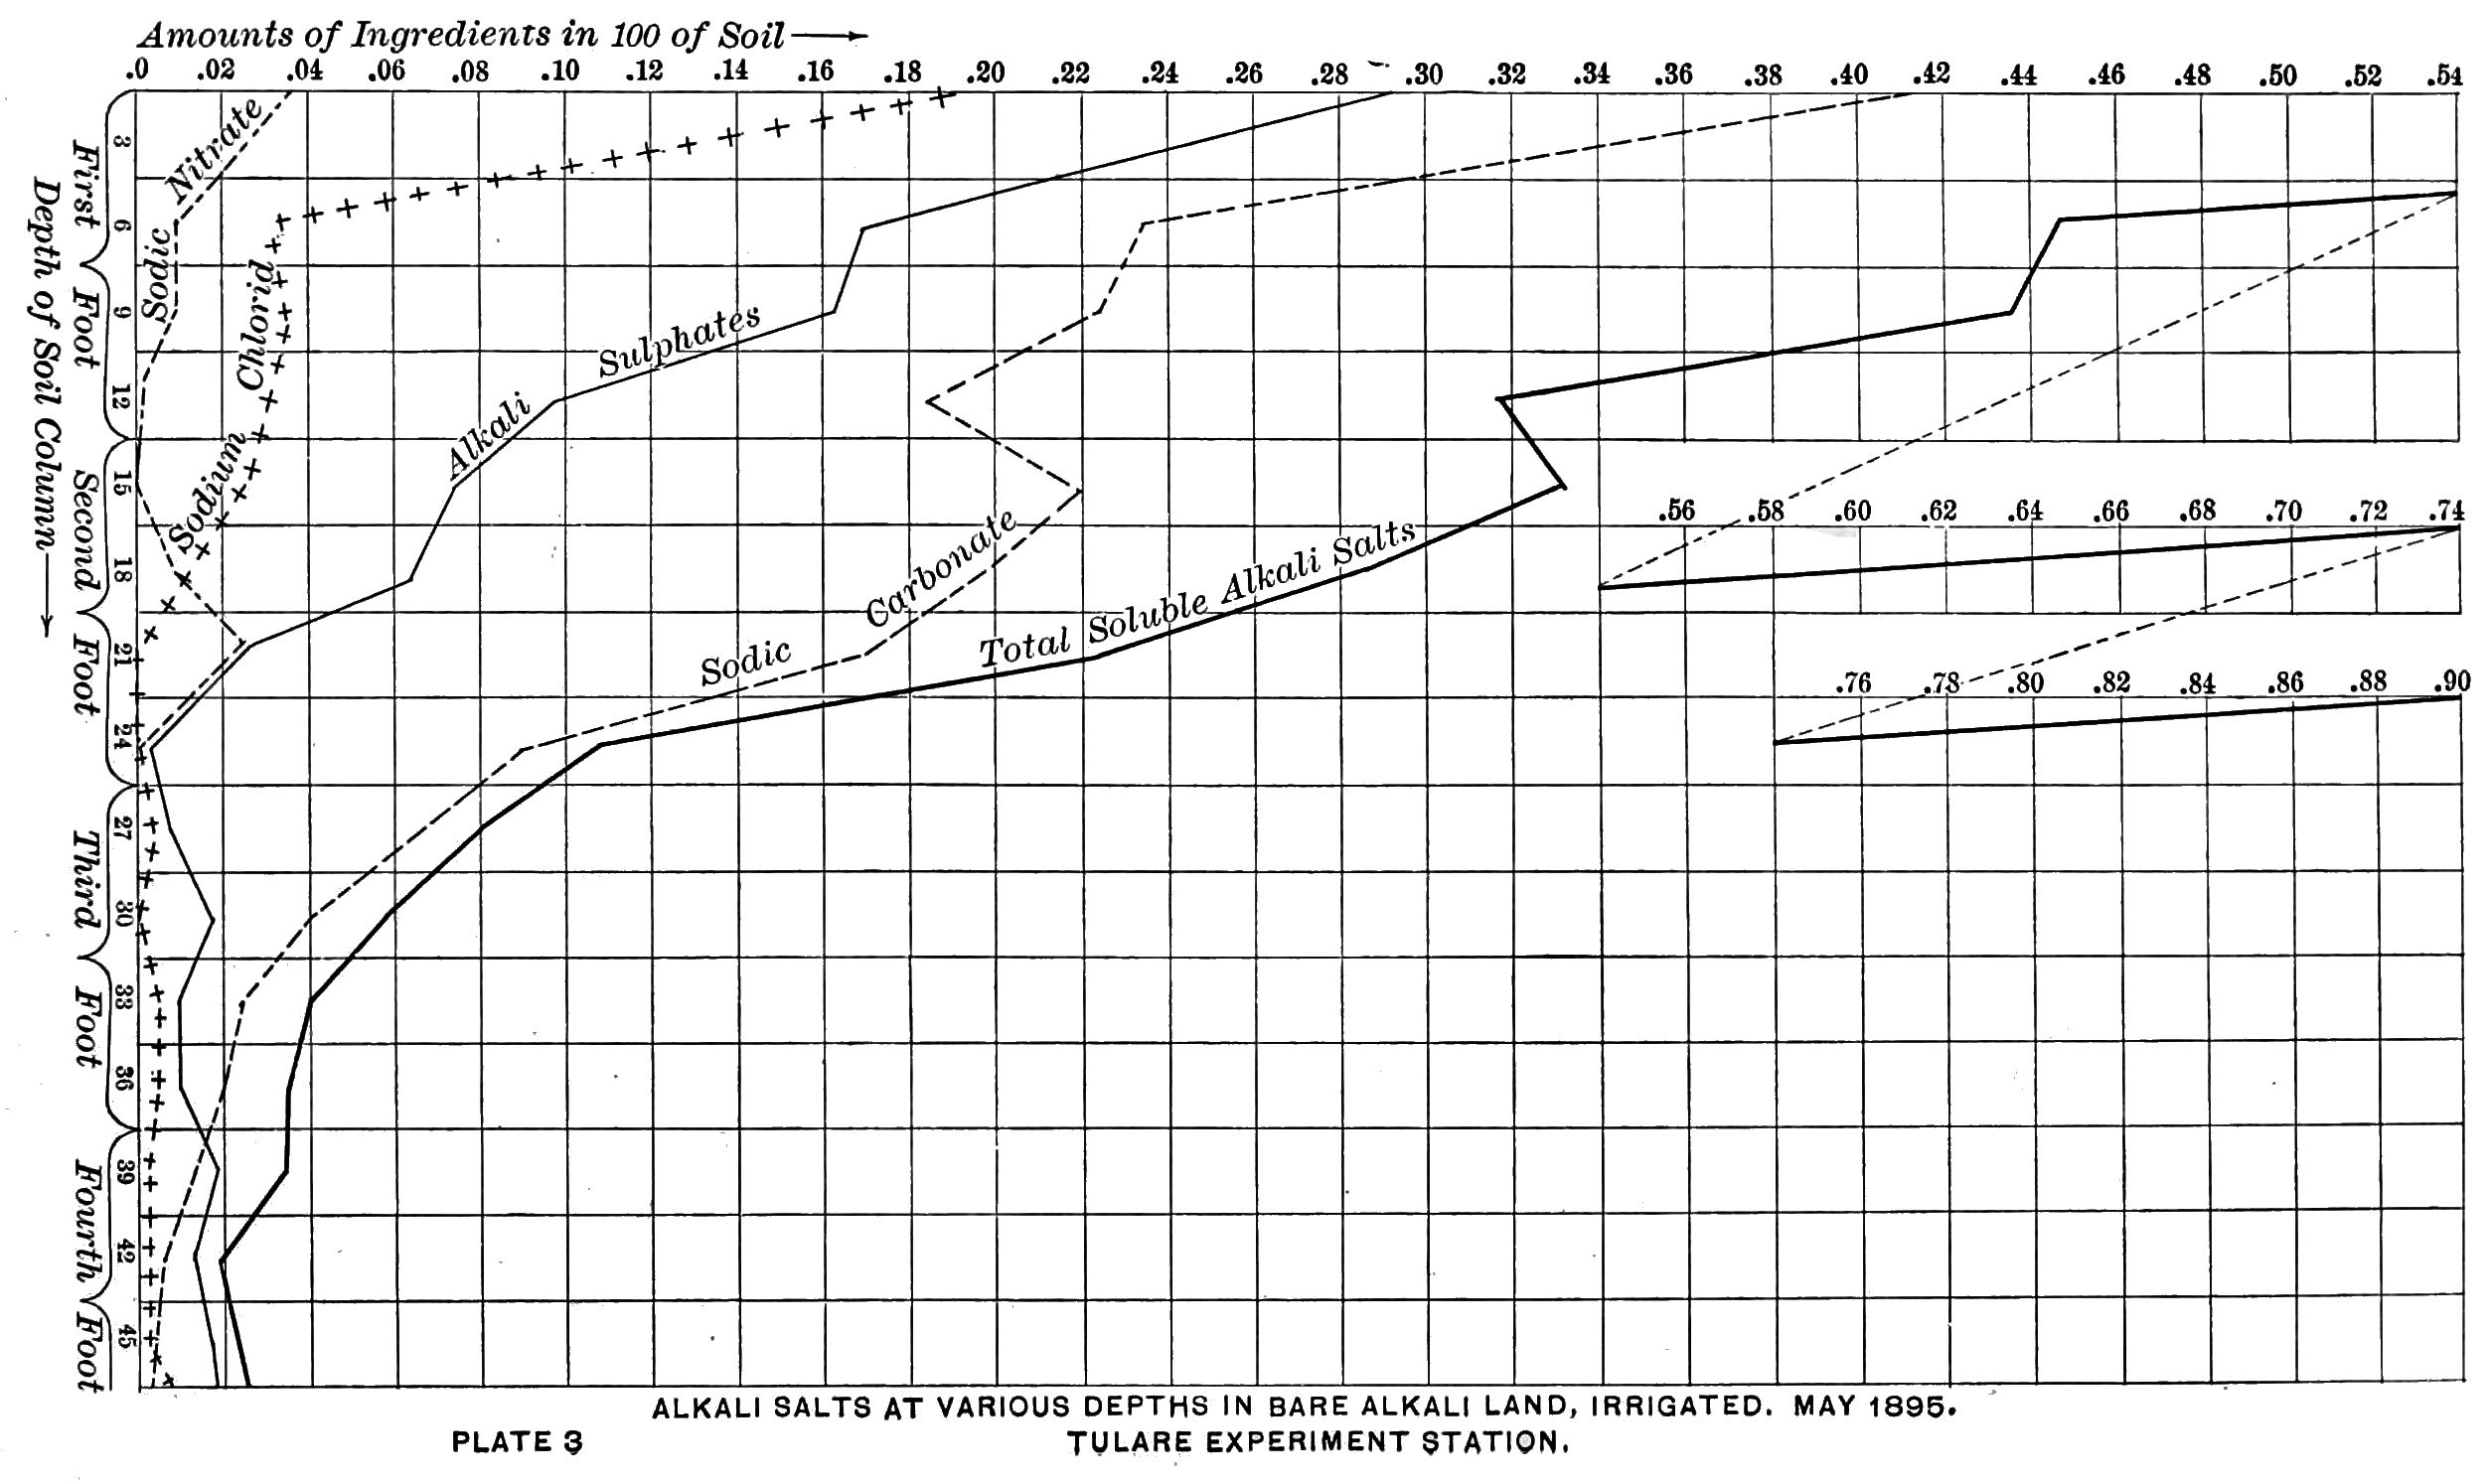 Multiplication Chart To 100: PSM V48 D682 Alkali salt content chart of irrigated land.jpg ,Chart